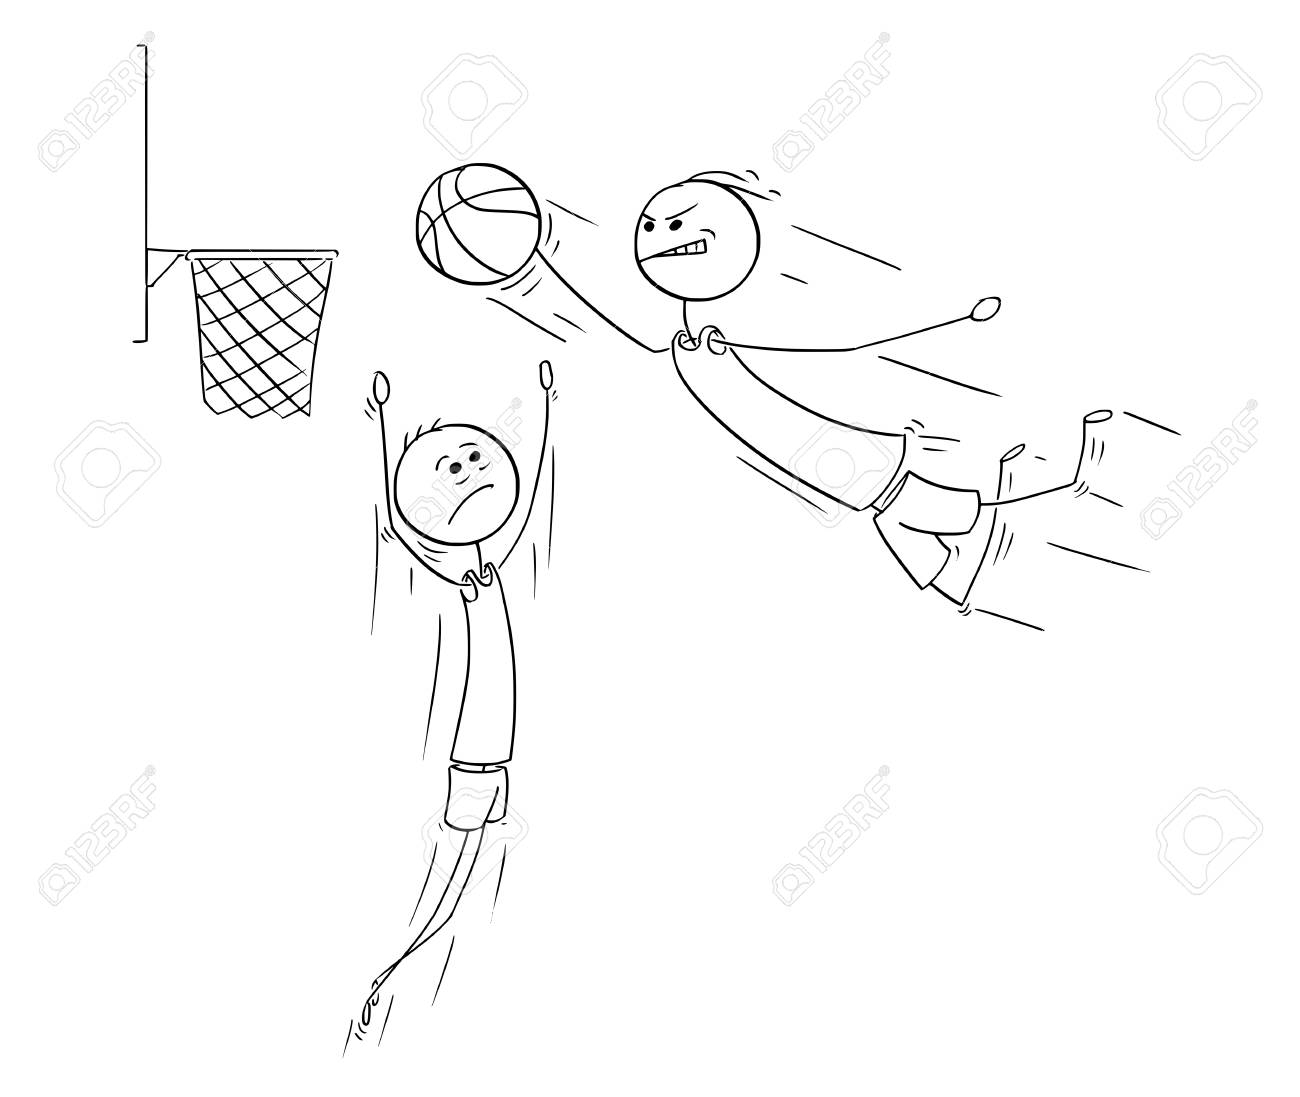 1300x1097 Cartoon Stick Man Drawing Illustration Of Basketball Player